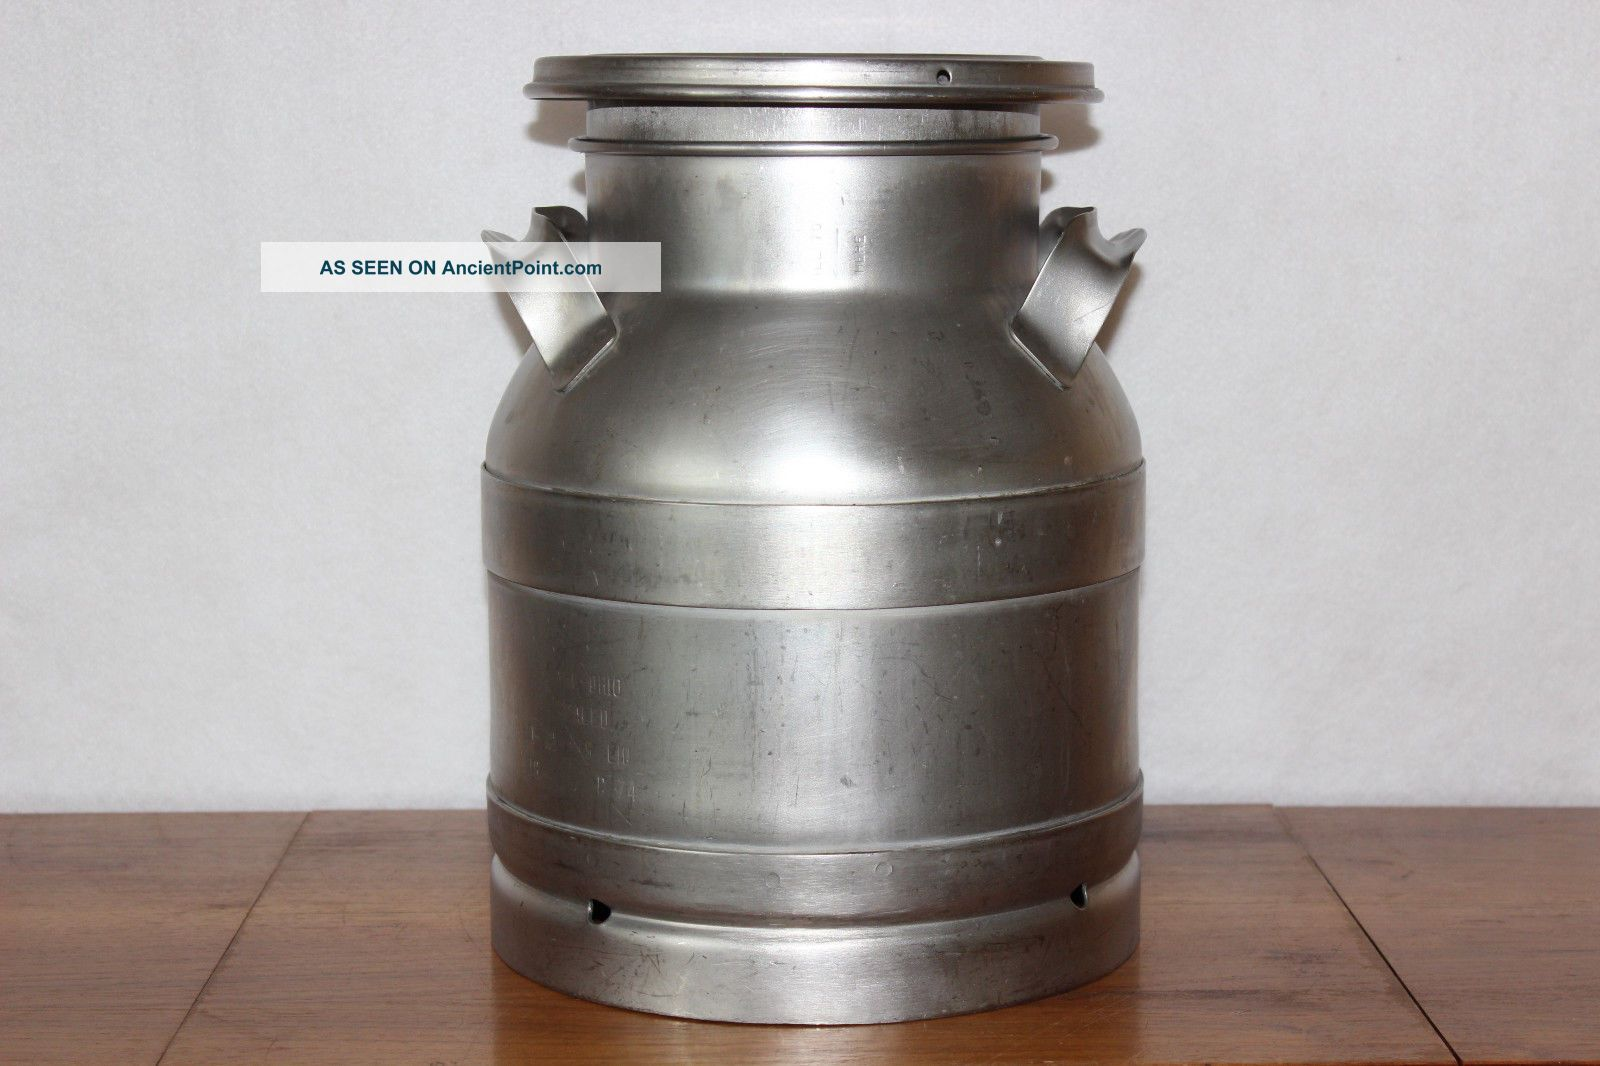 Vintage Buhl Ohio 3 Gallon / 12 Qts.  Dairy Farm Stainless Steel Milk Can Bottle Other Antique Home & Hearth photo